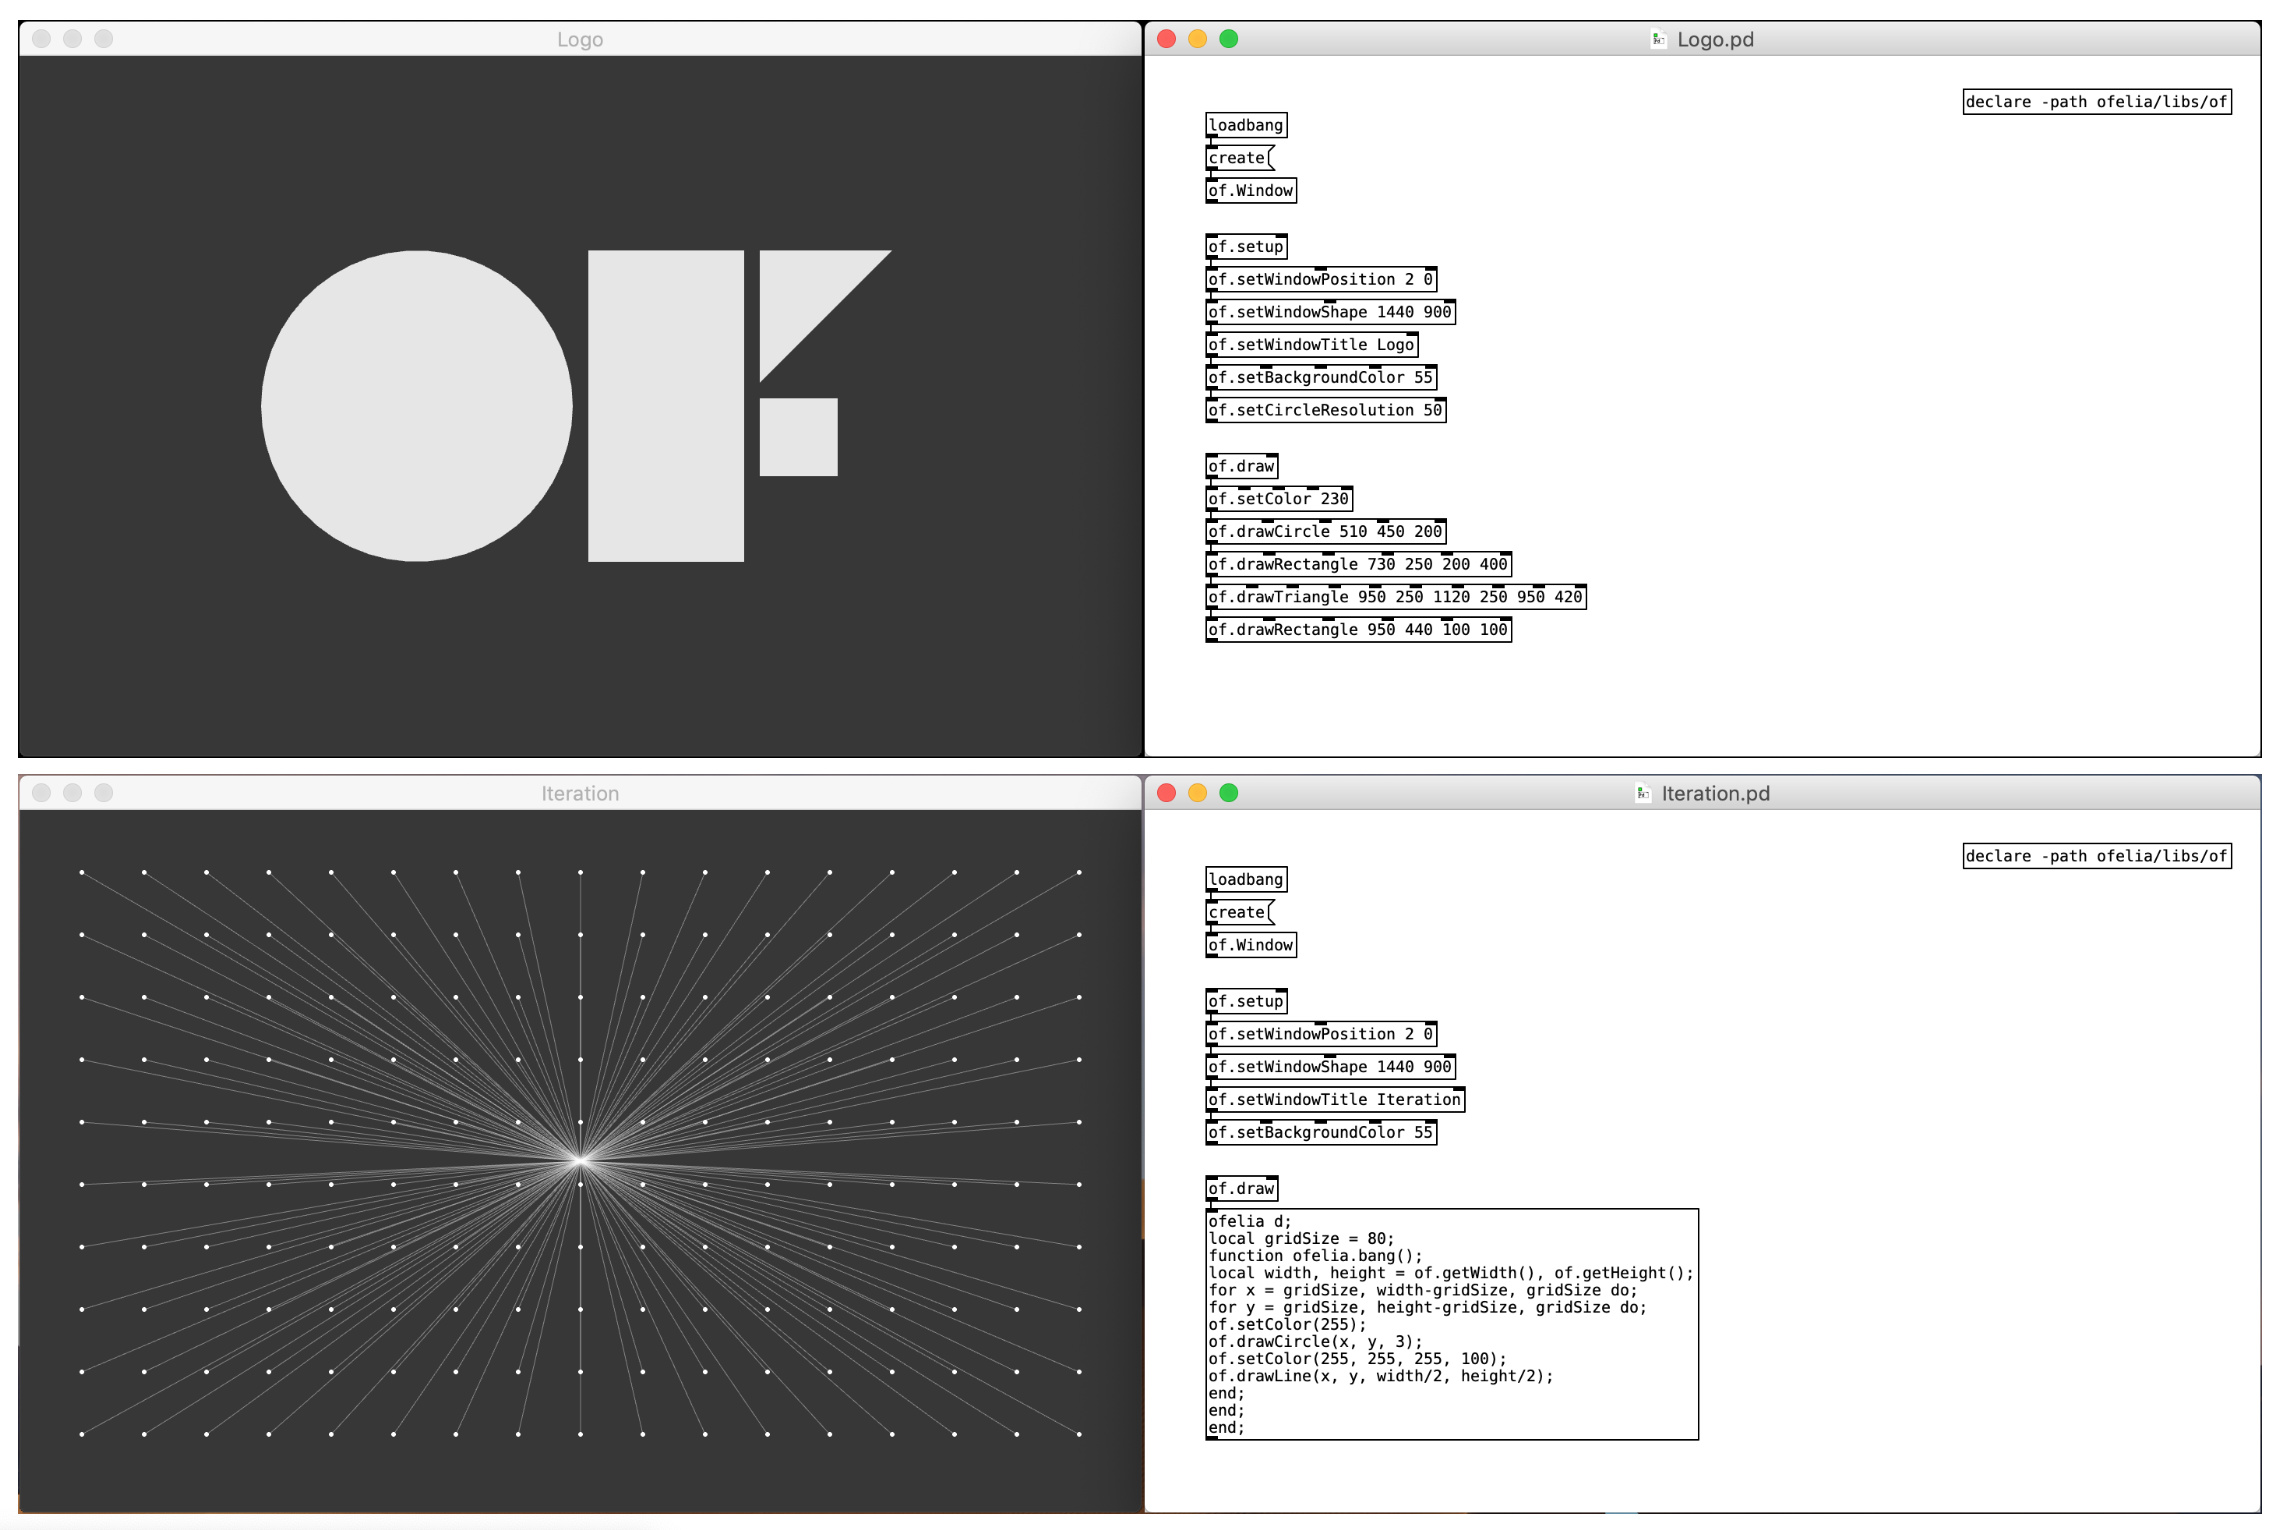 Ofelia: openFrameworks and Lua within Pure Data - announcements